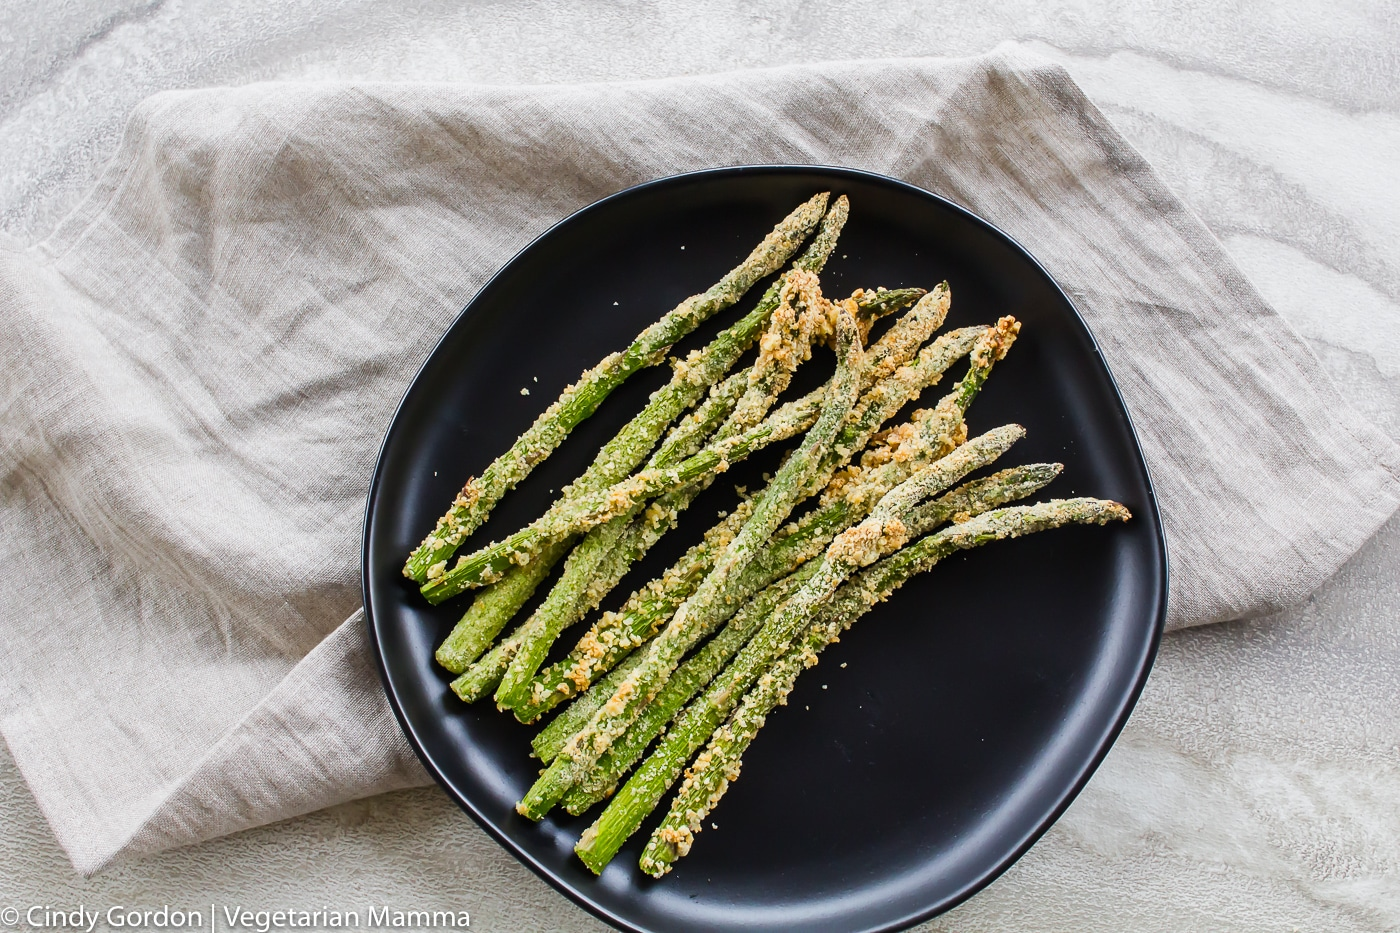 Crispy Asparagus in Air Fryer